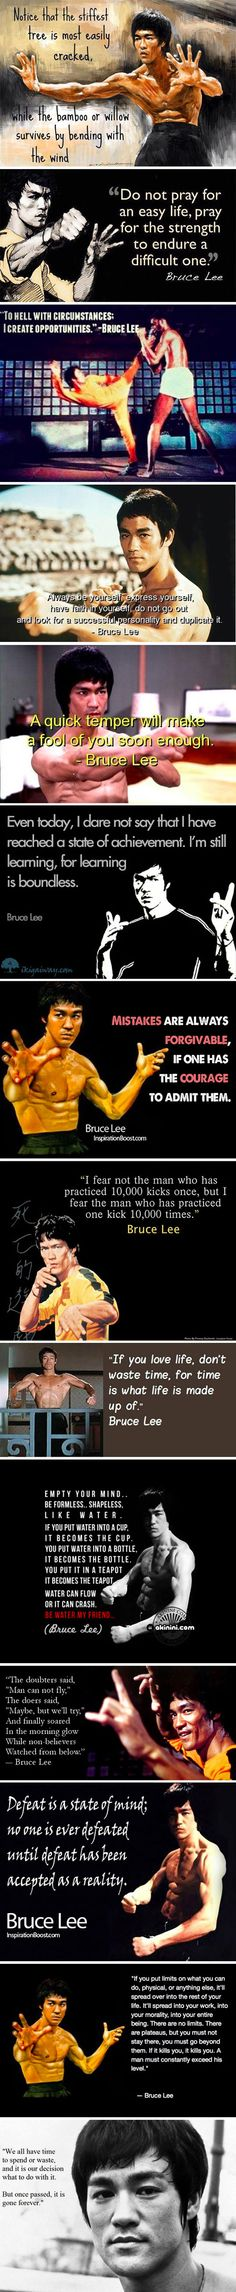 Just a little Bruce Lee.